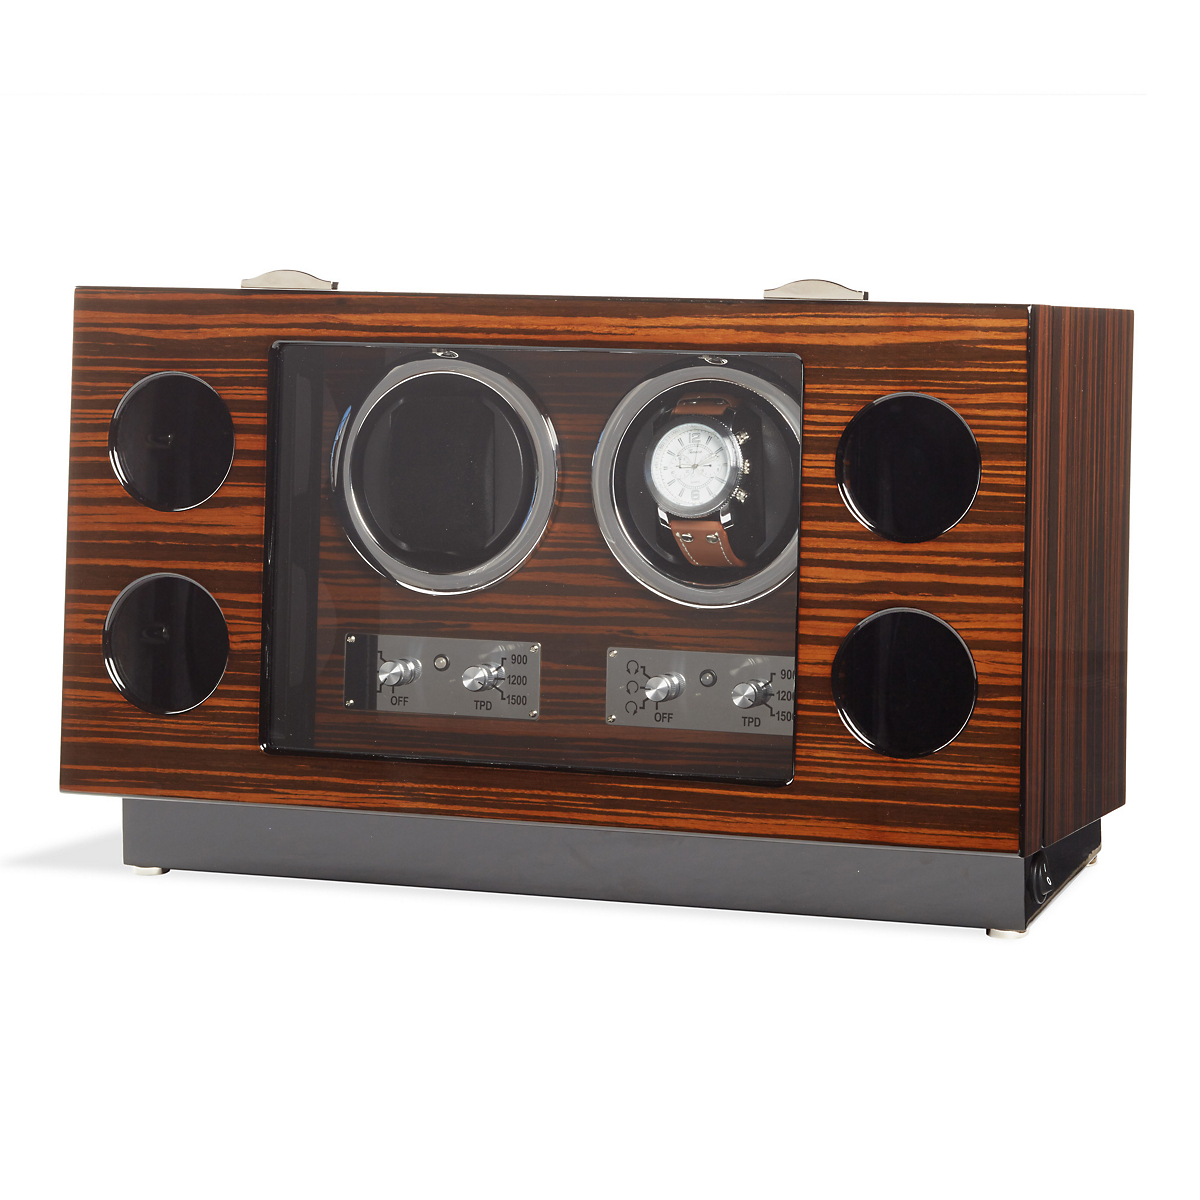 Watch Winder Box